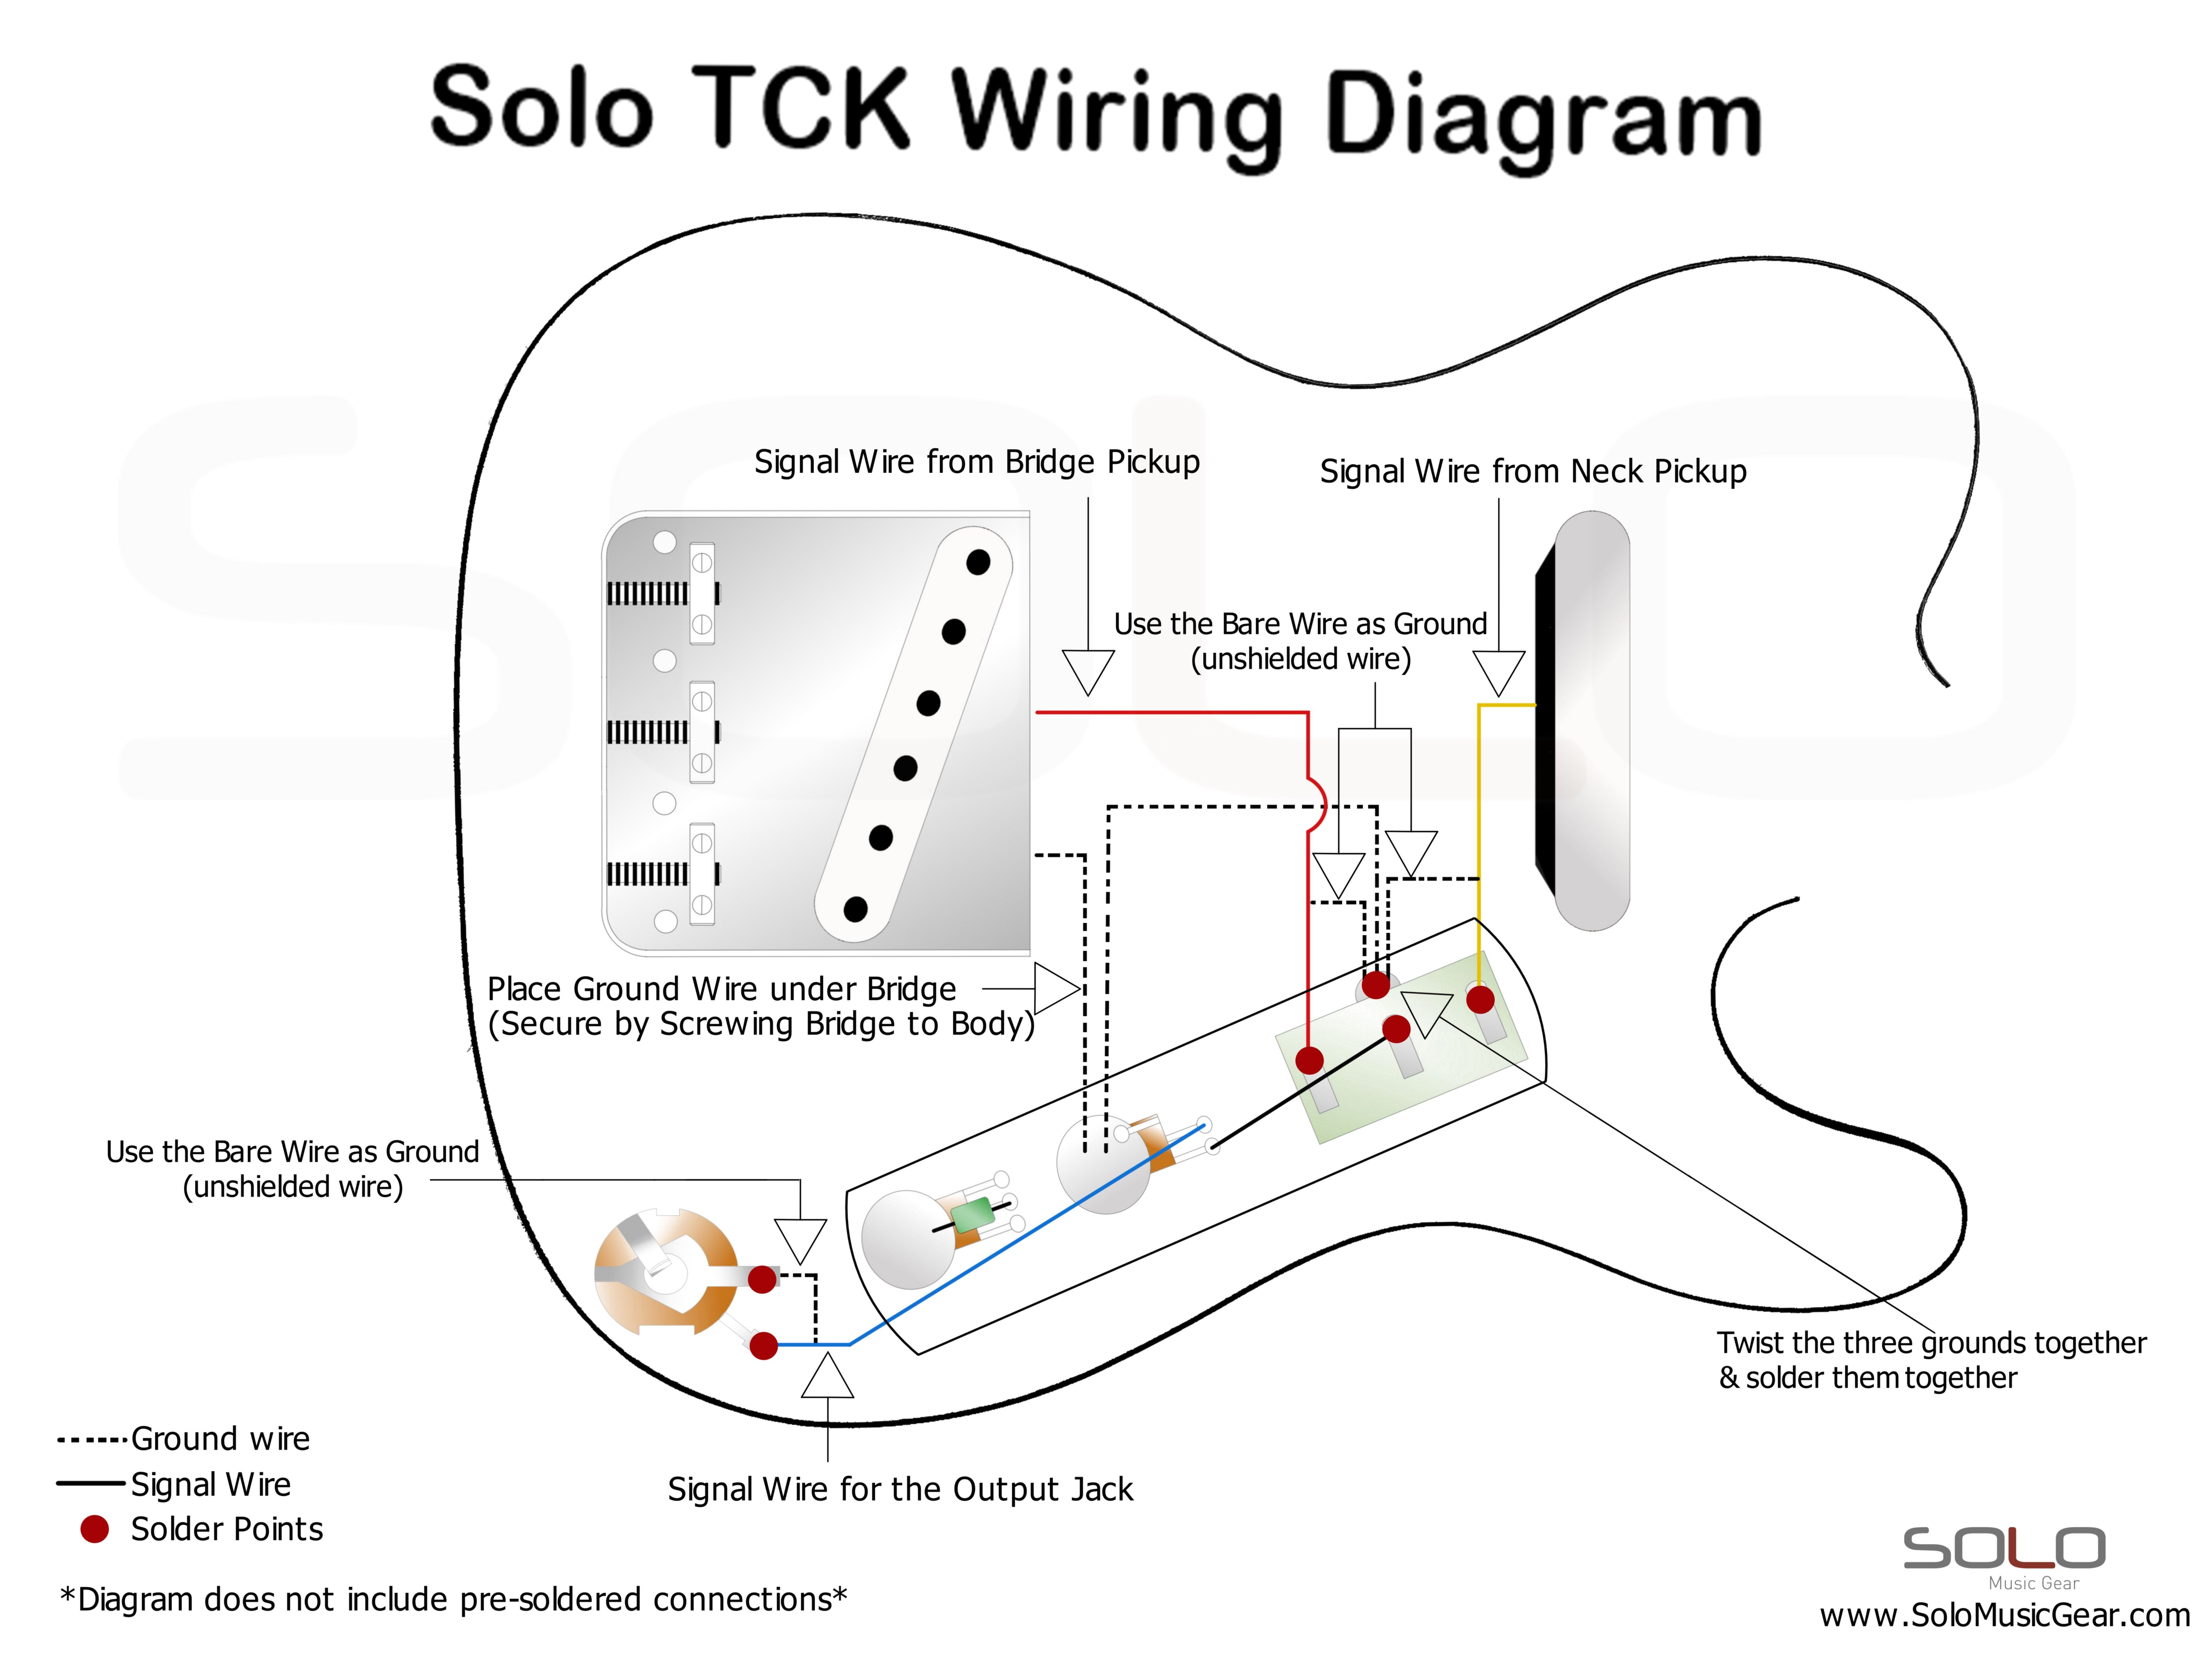 Style Wiring Guide Tele thinline style diy guitar kit wiring diagram guide solo tc thinline style wiring guide